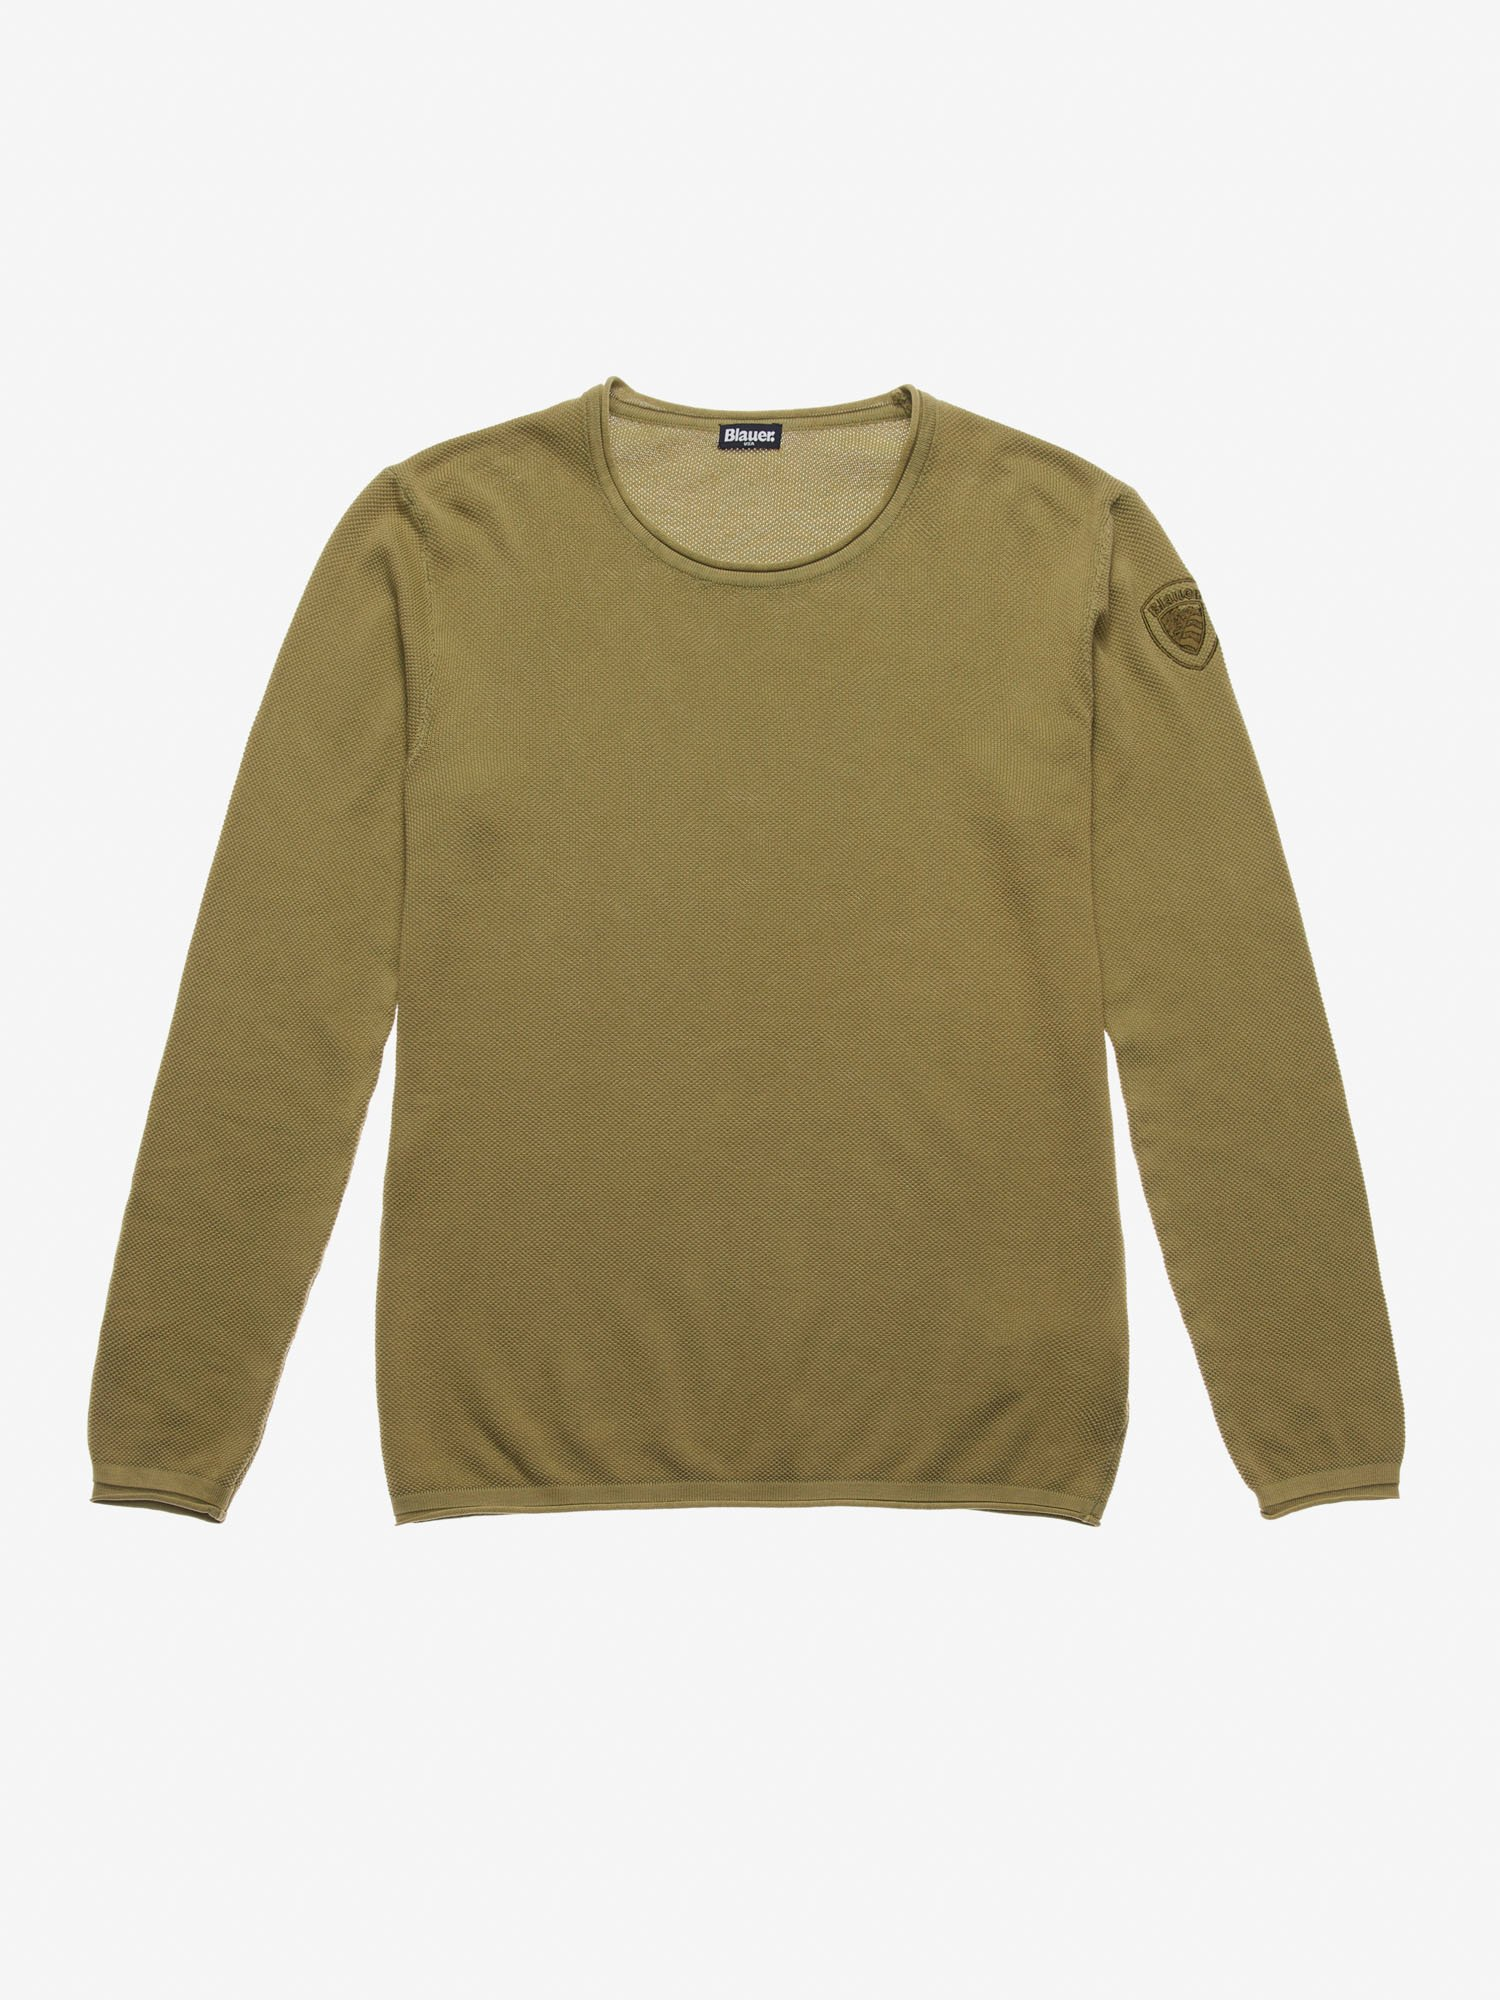 CREW NECK KNIT SWEATER - Blauer